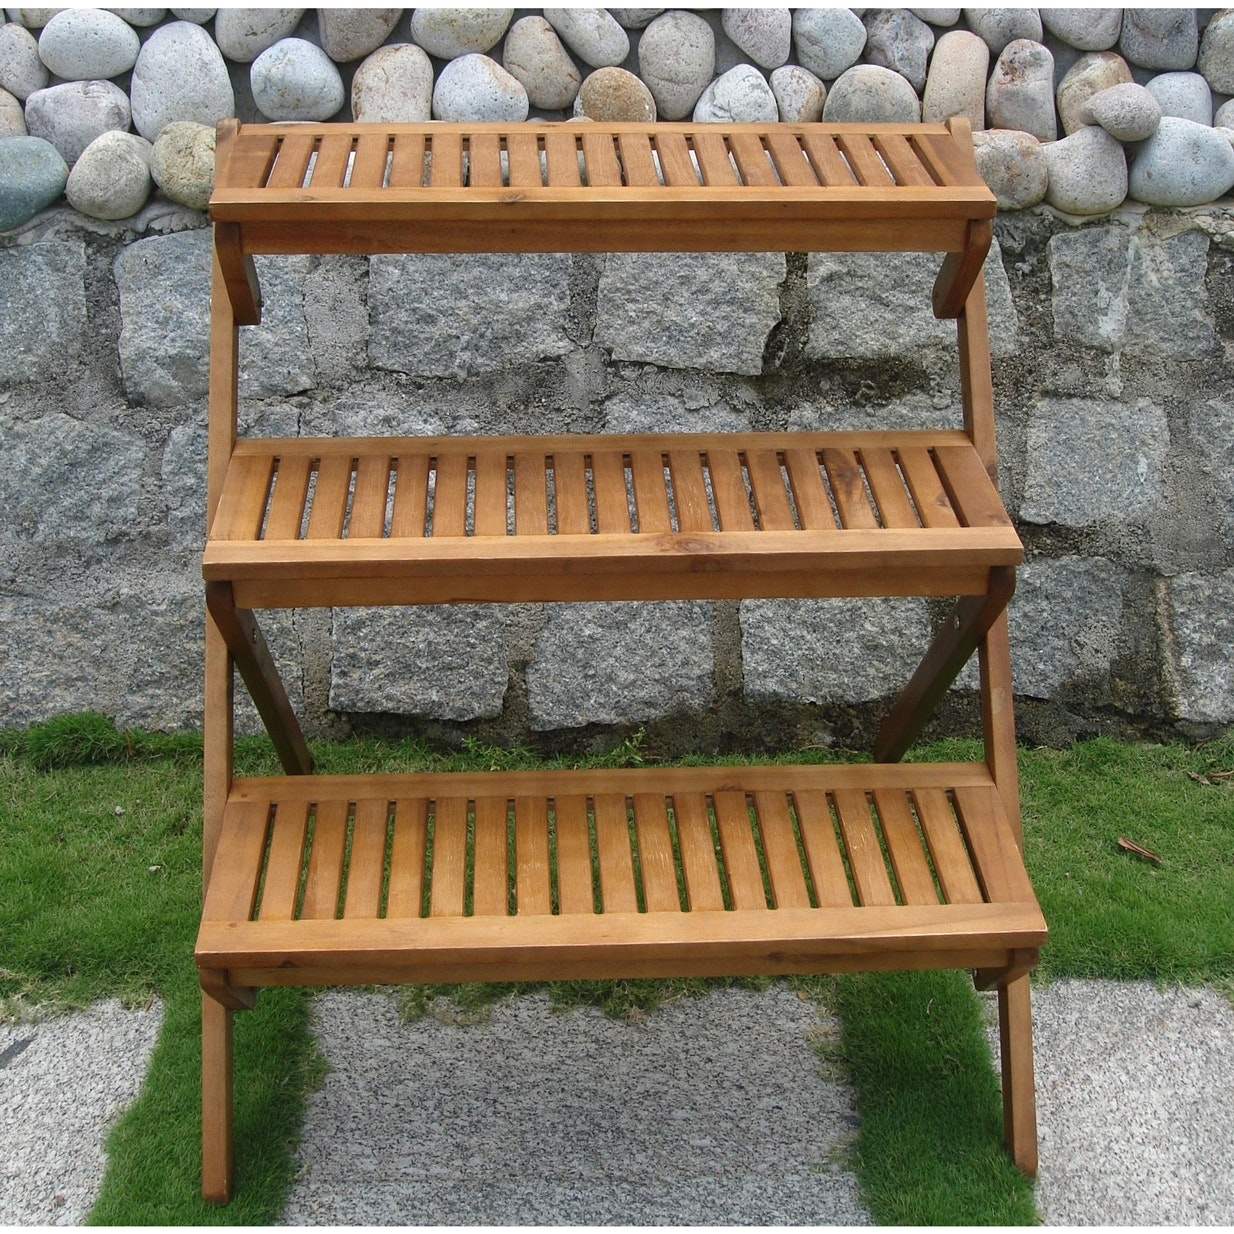 3 Tier Planter Stand In Eucalyptus Wood For Outdoor Or Indoor Use Fastfurnishings